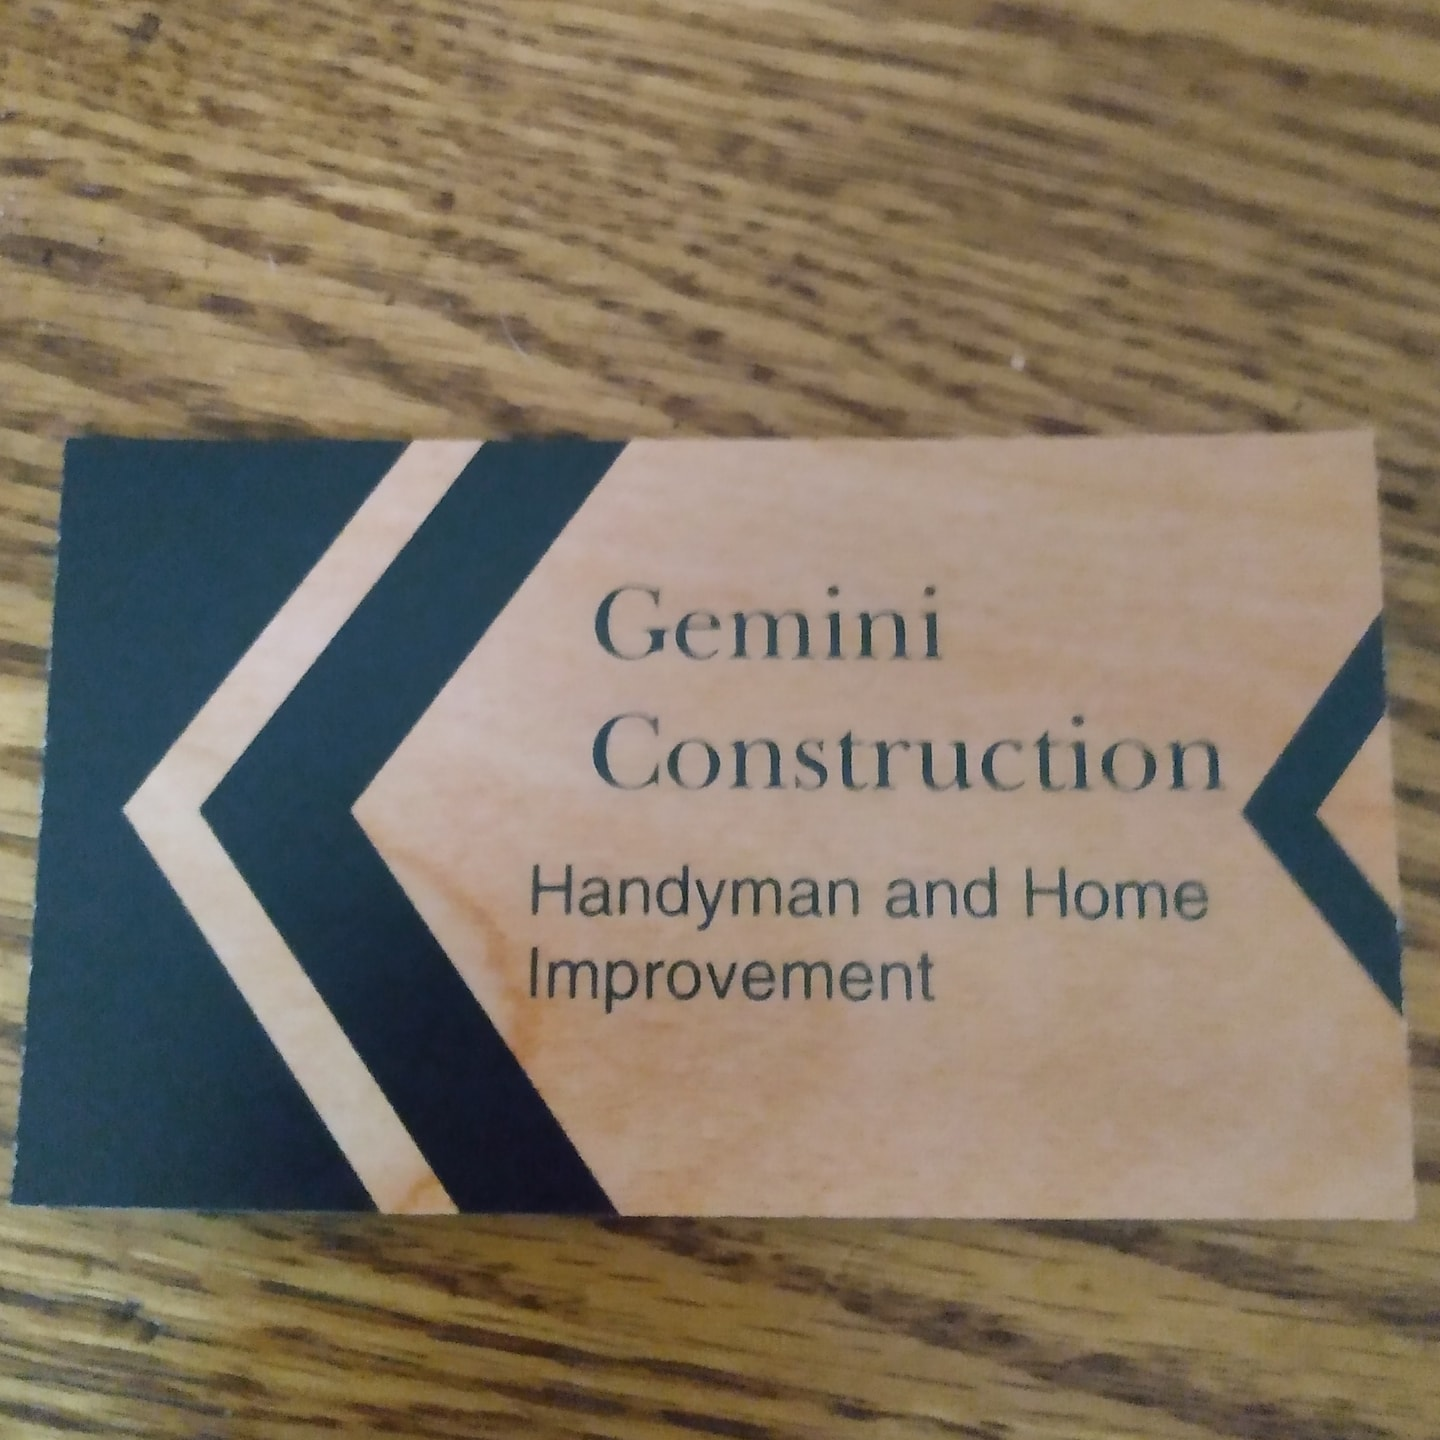 Gemini construction and handyman services